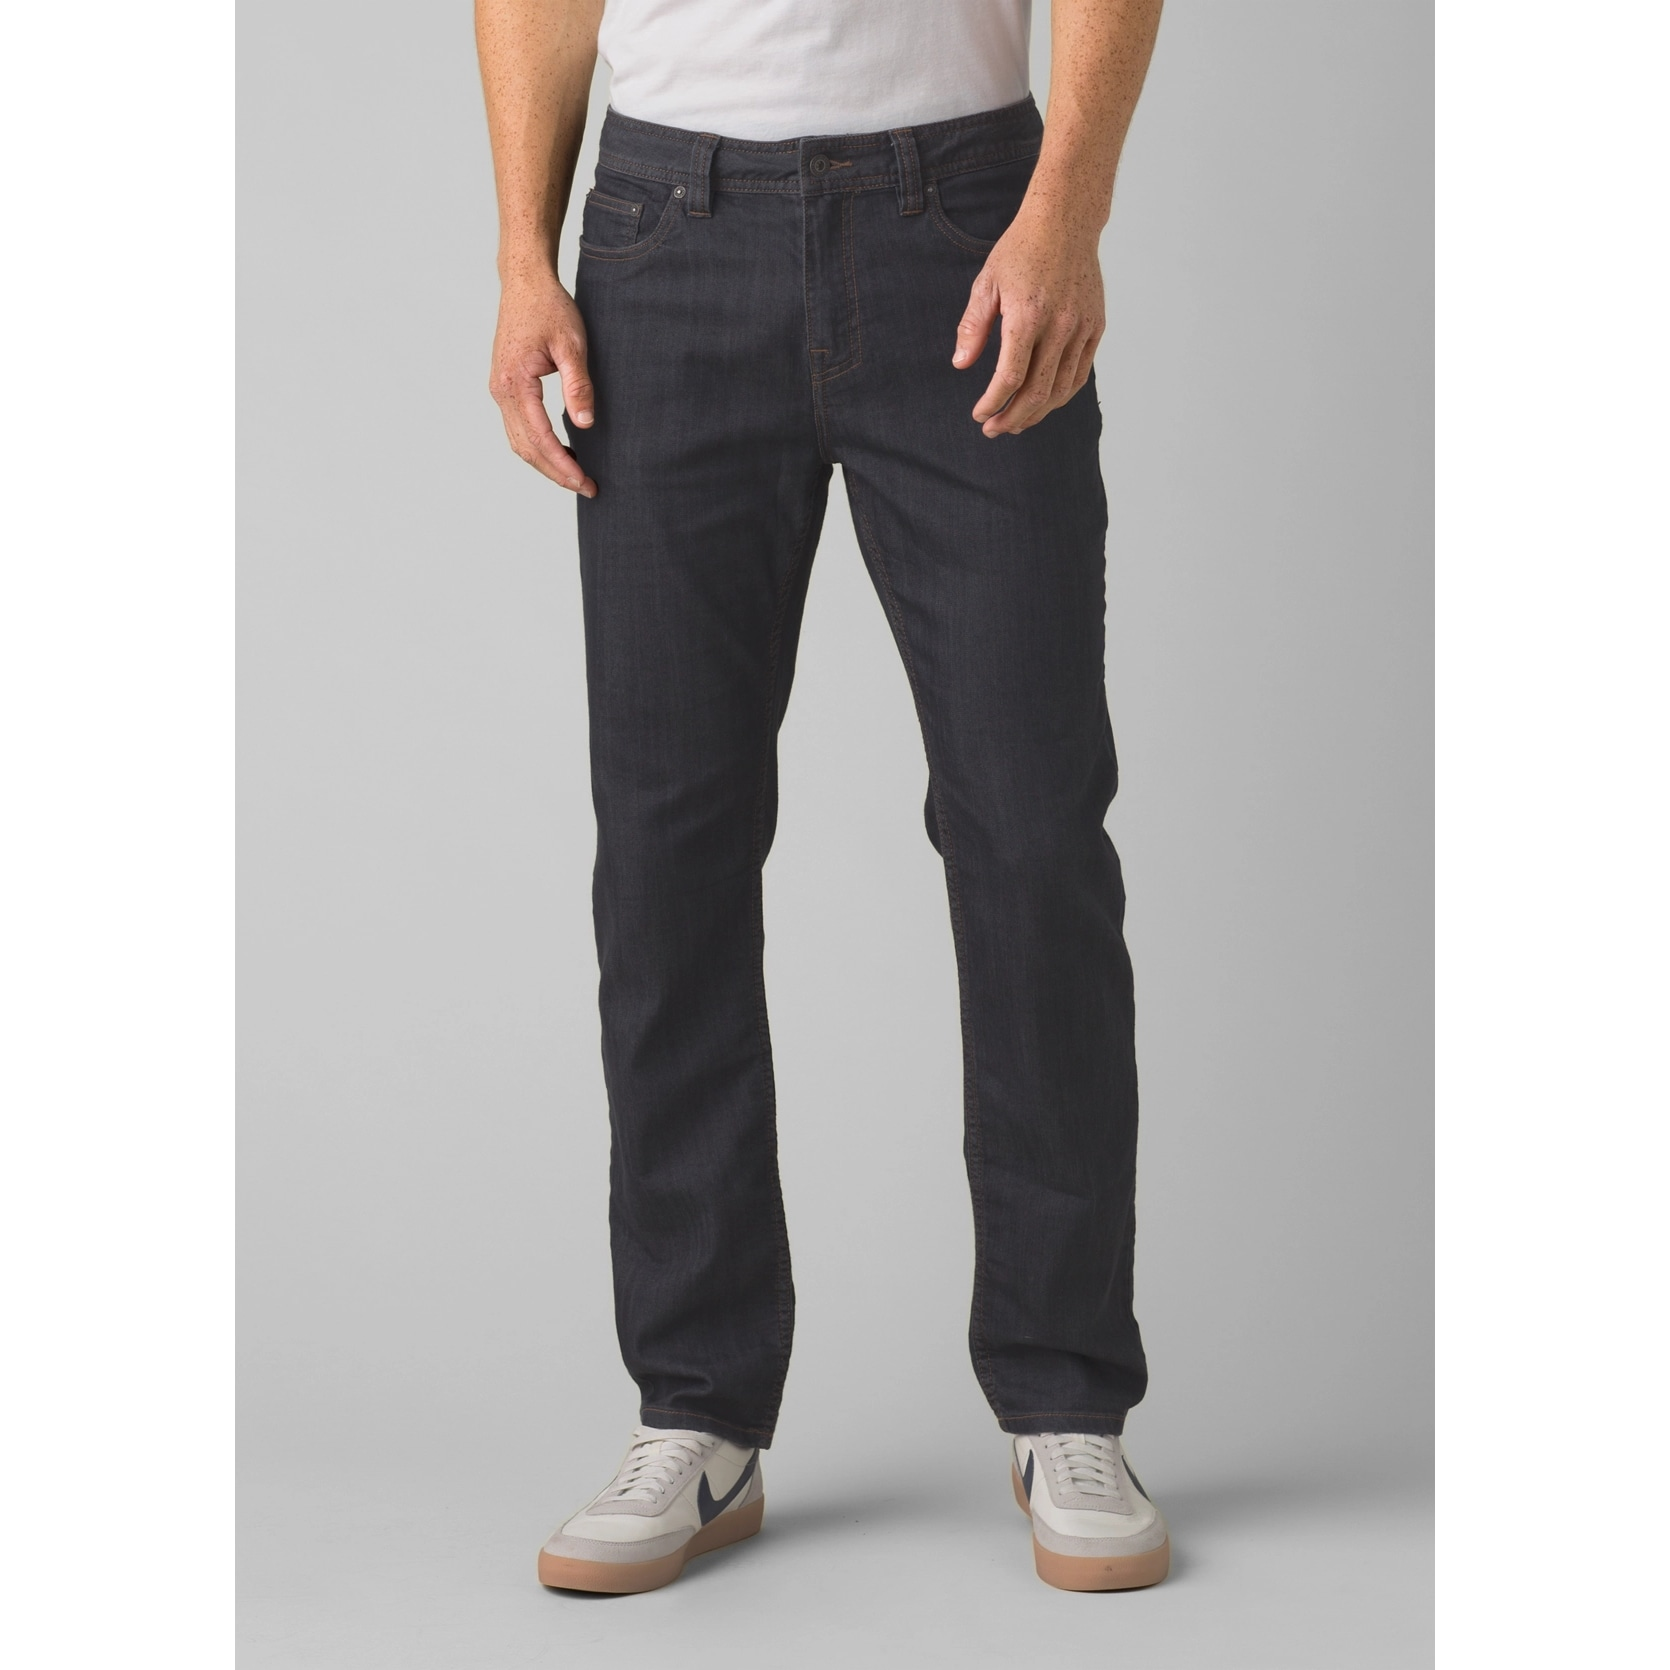 Bridger Jean 34 in - Men's